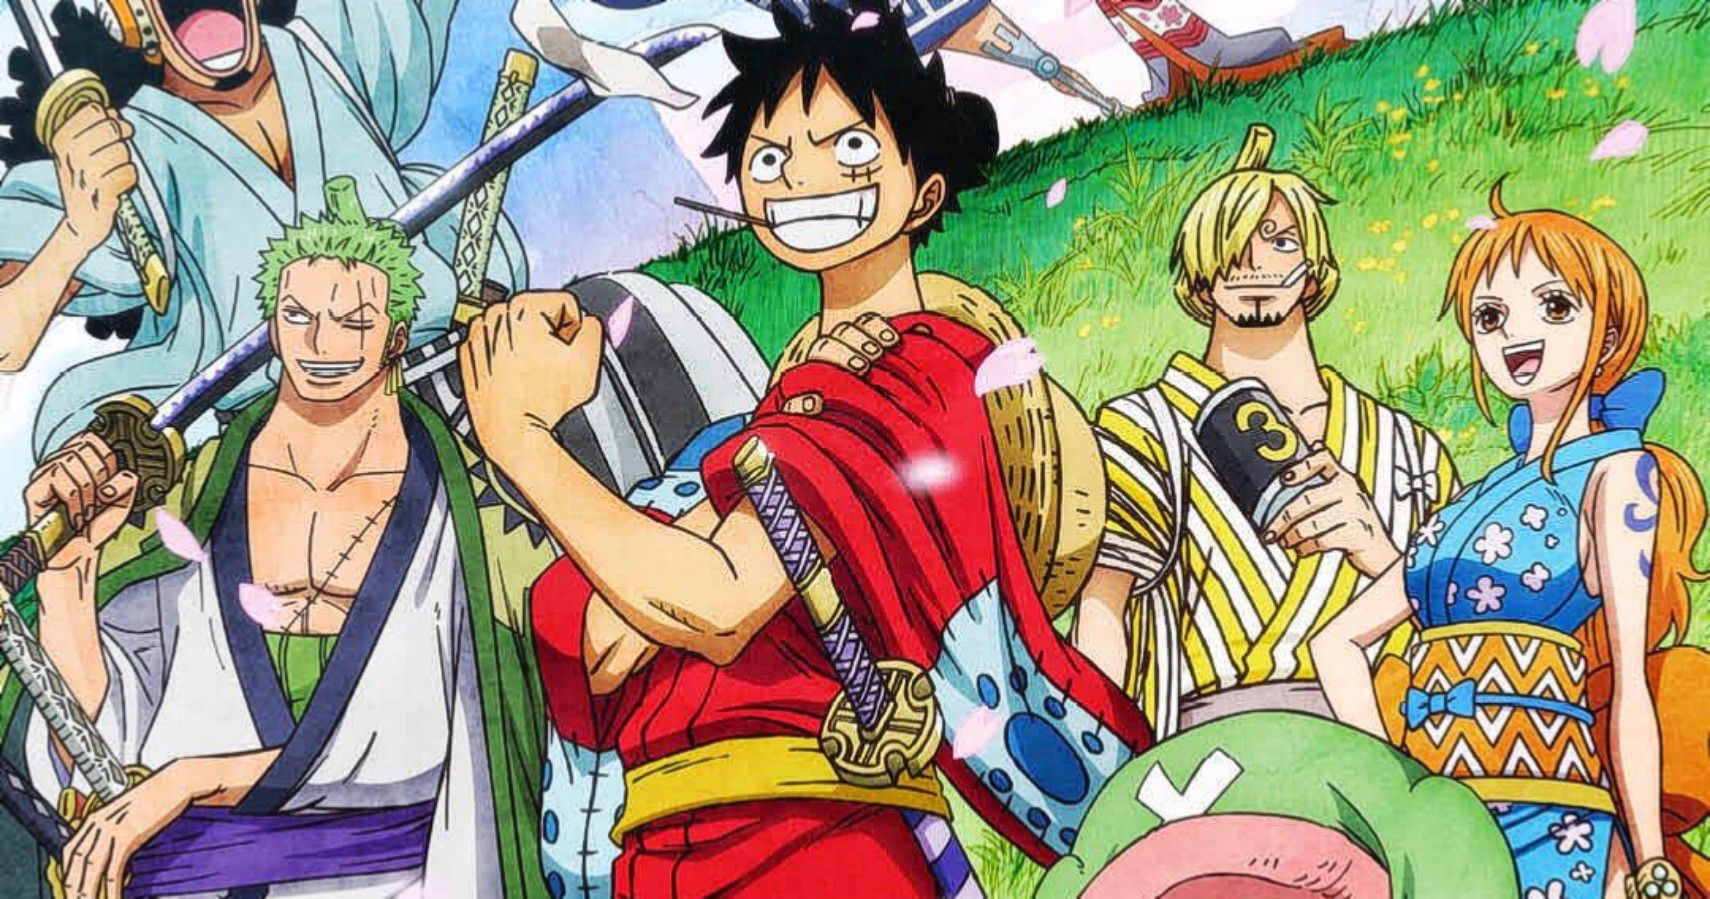 One Piece Episode 991 Anime Release Date, Recap, And SpoilersRecap and Spoilers